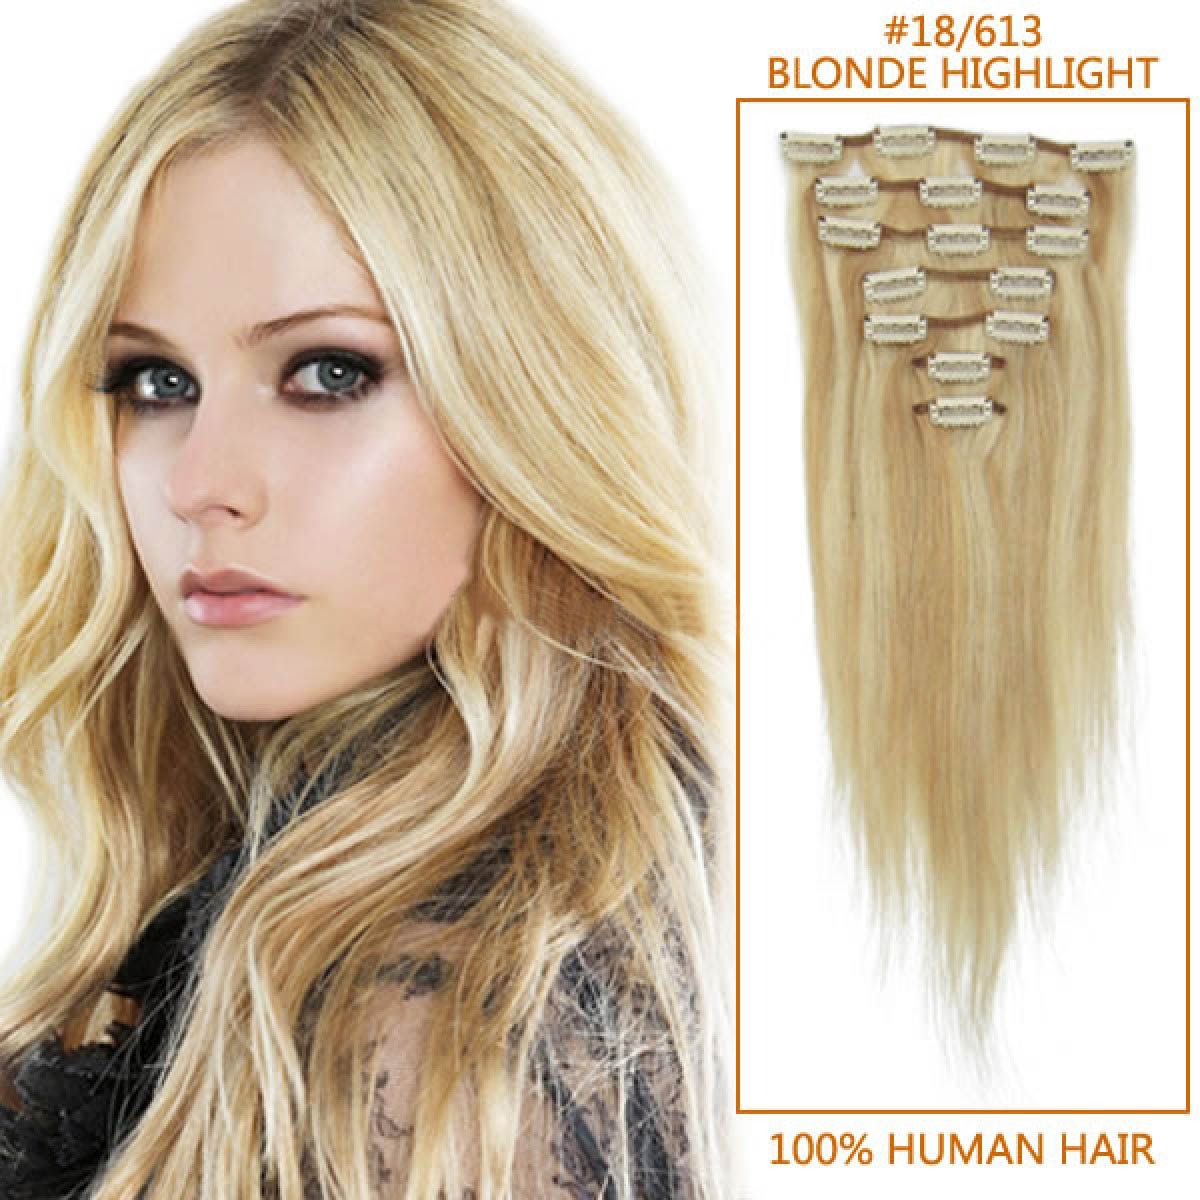 28 Inch 18613 Blonde Highlight Clip In Remy Human Hair Extensions